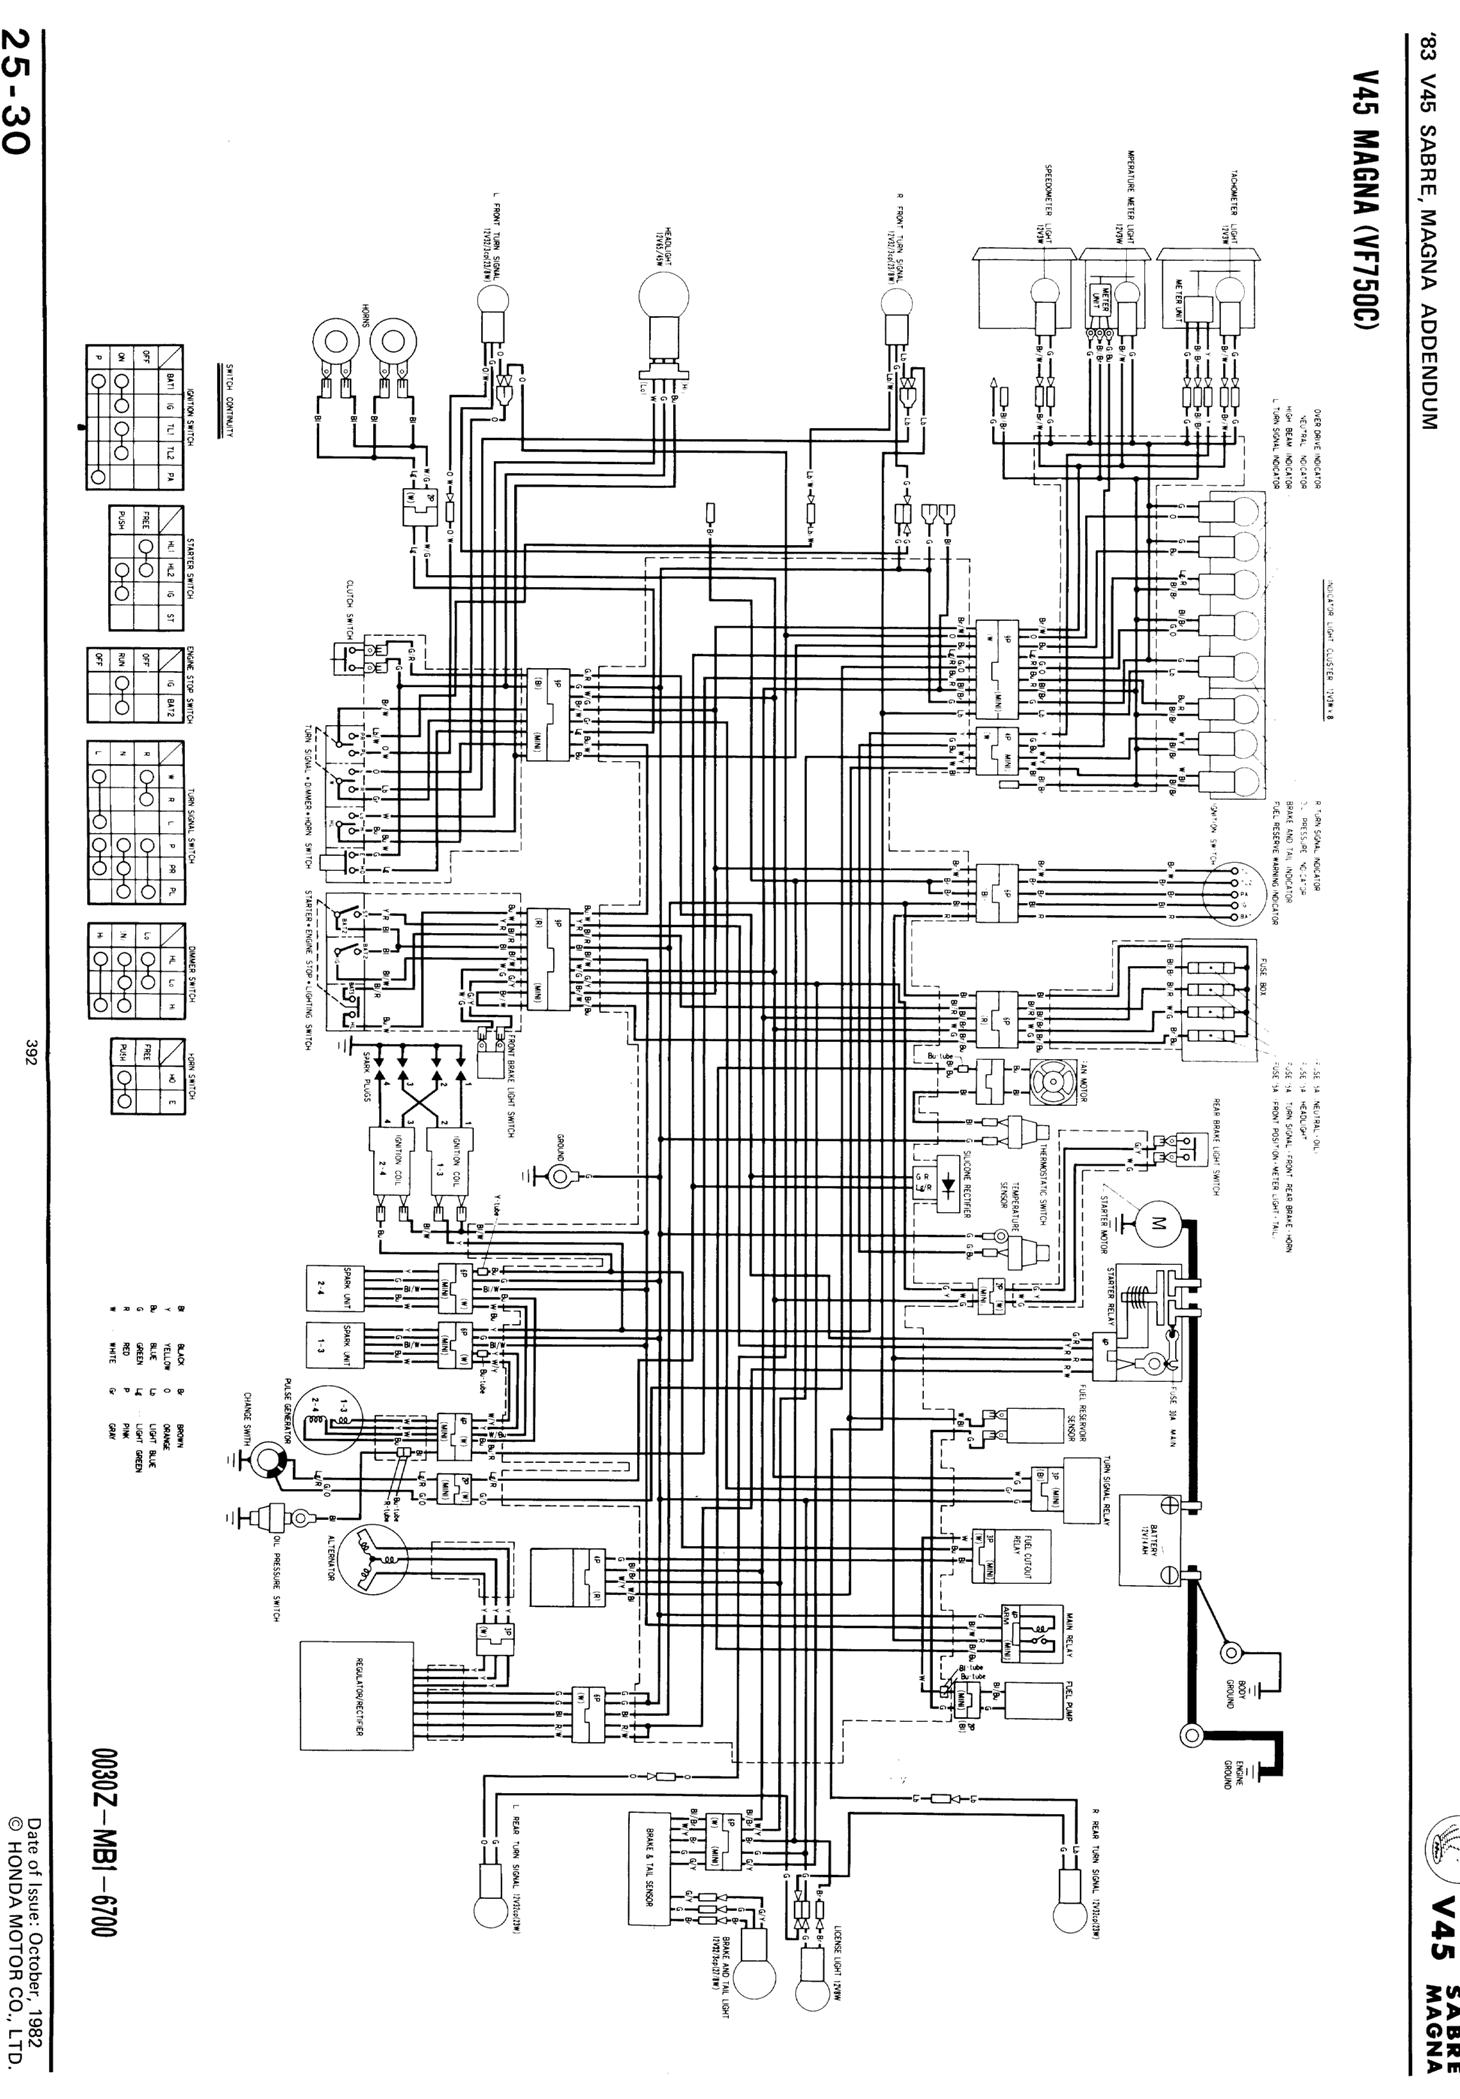 Wiring Diagram Soundtraxx Tsunami2